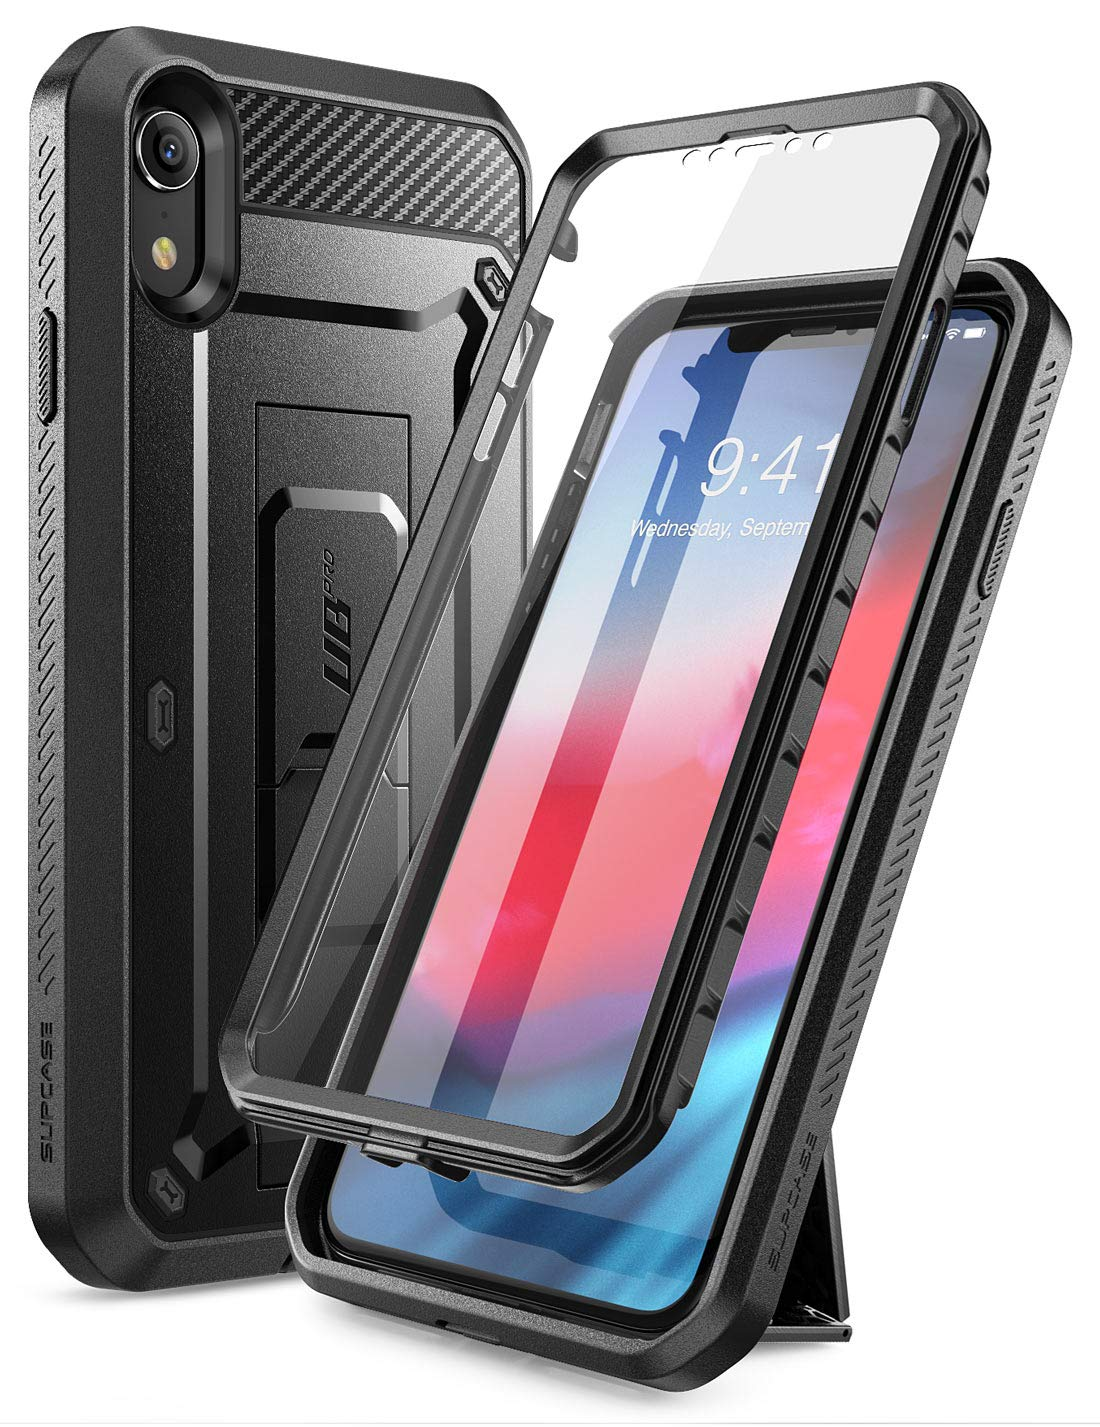 SUPCASE iPhone XR Case, Full-Body Rugged Holster Case with Built-in Screen Protector for Apple iPhone XR (2018 Release), Unicorn Beetle Pro Series (Black)